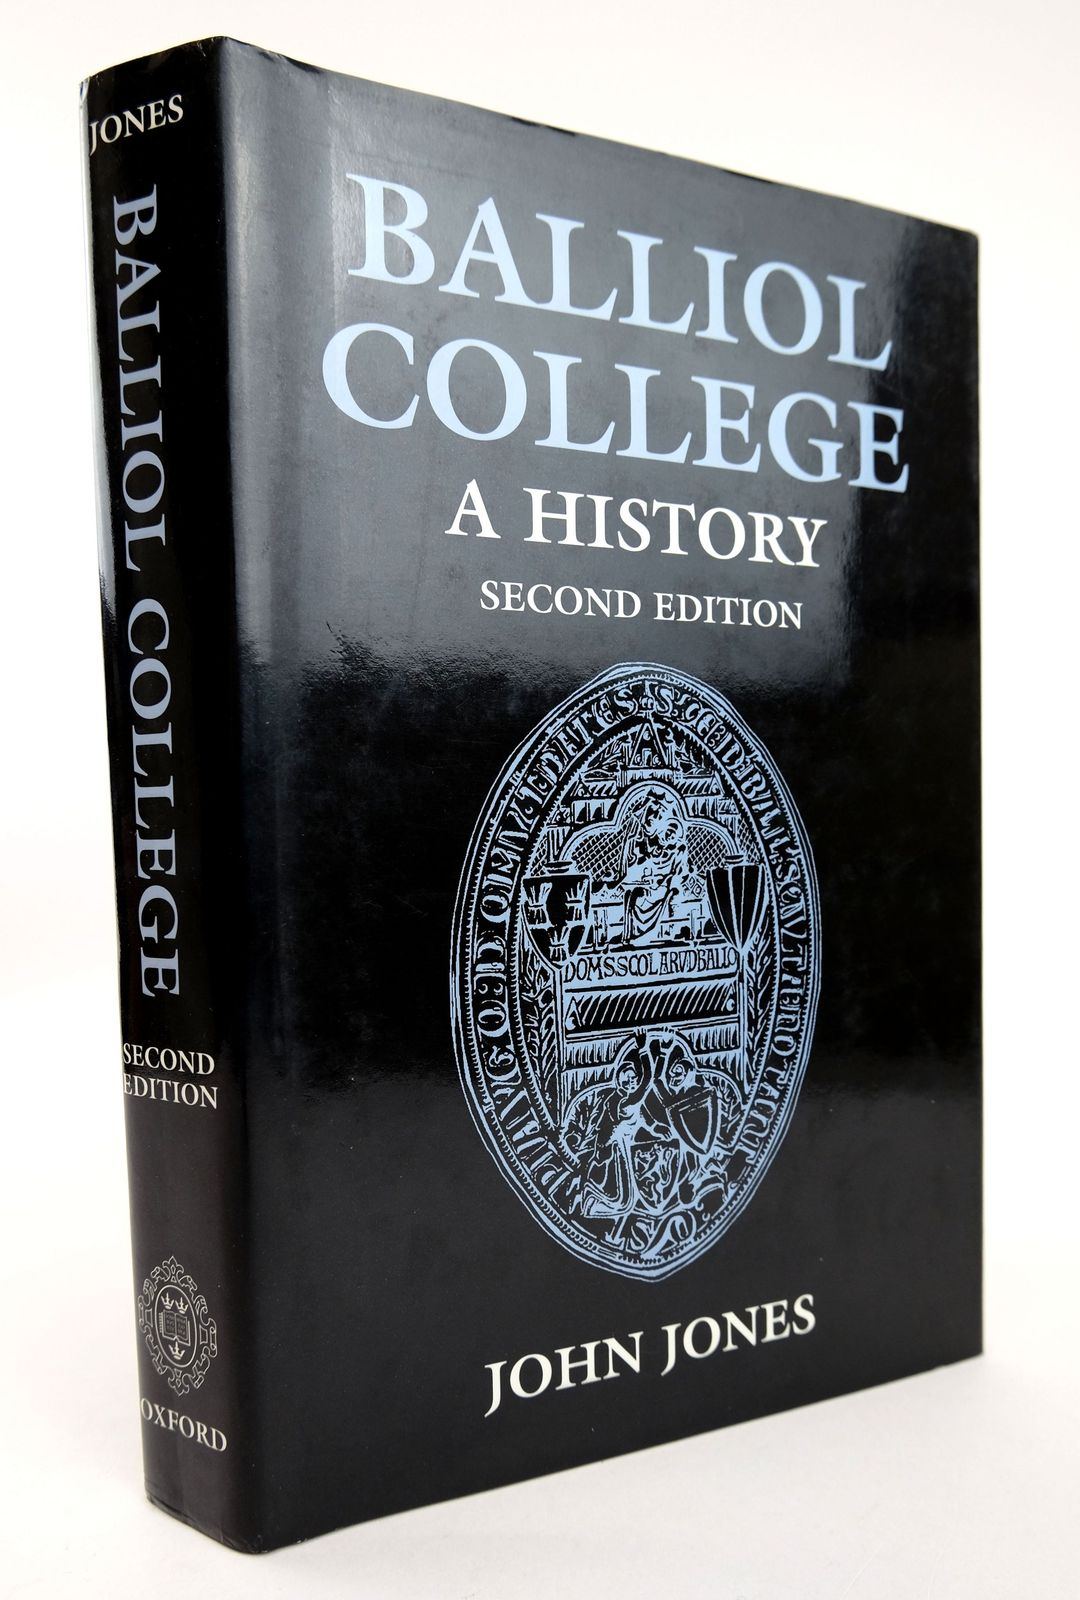 Photo of BALLIOL COLLEGE: A HISTORY written by Jones, John published by Oxford University Press (STOCK CODE: 1818862)  for sale by Stella & Rose's Books